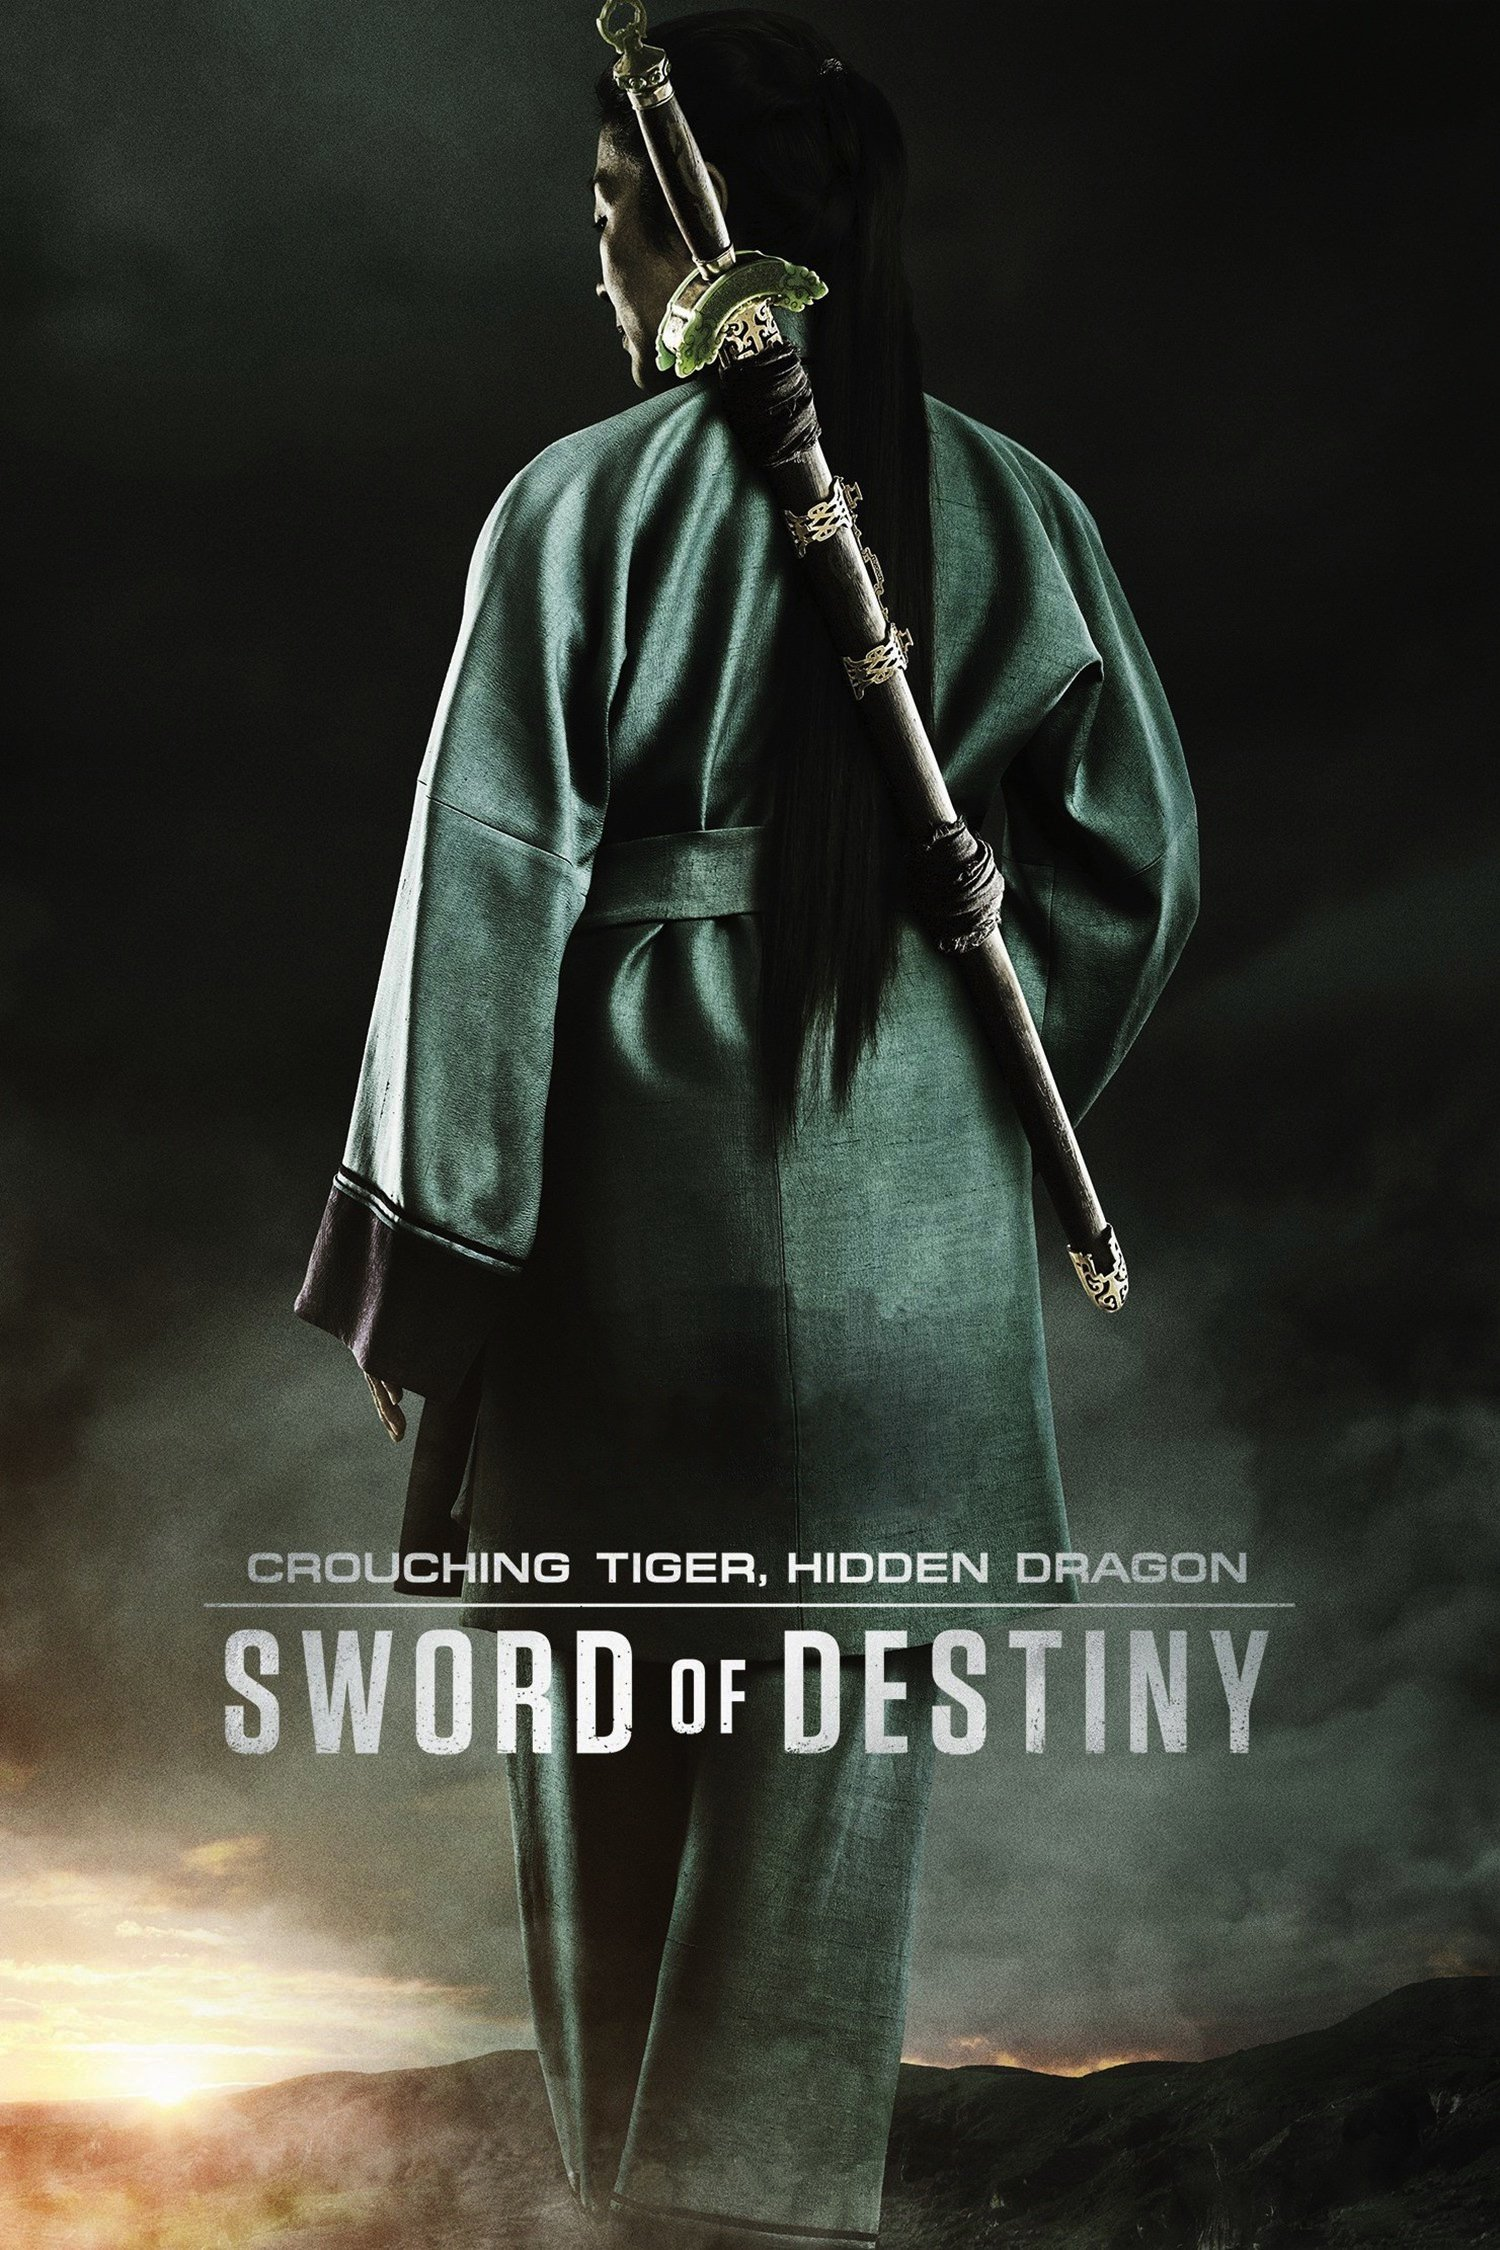 Sword of Destiny: Like an old Western in Asian setting.